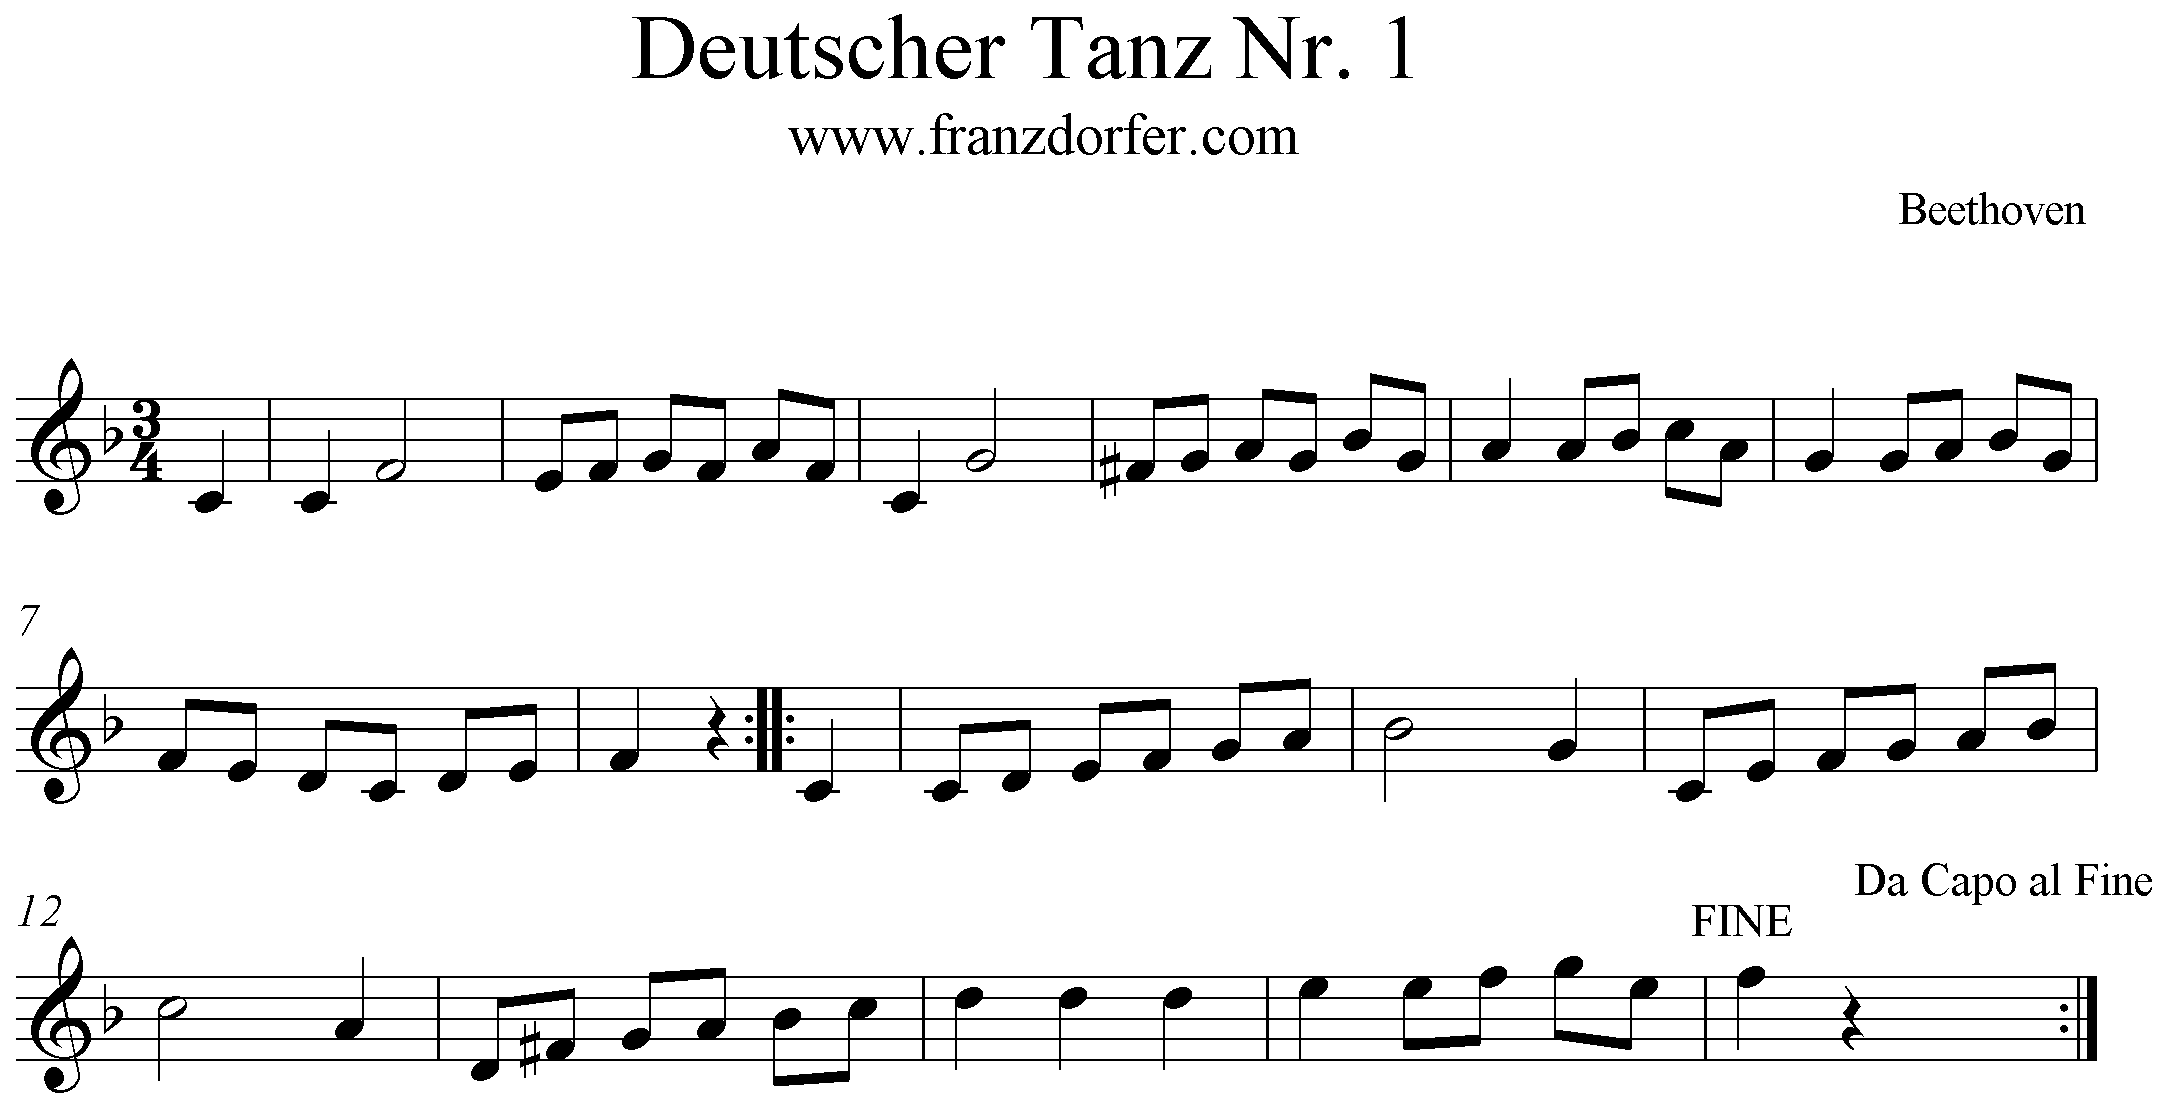 German Dance Nr.1- Deutscher Tanz Nr. 1 Beethoven